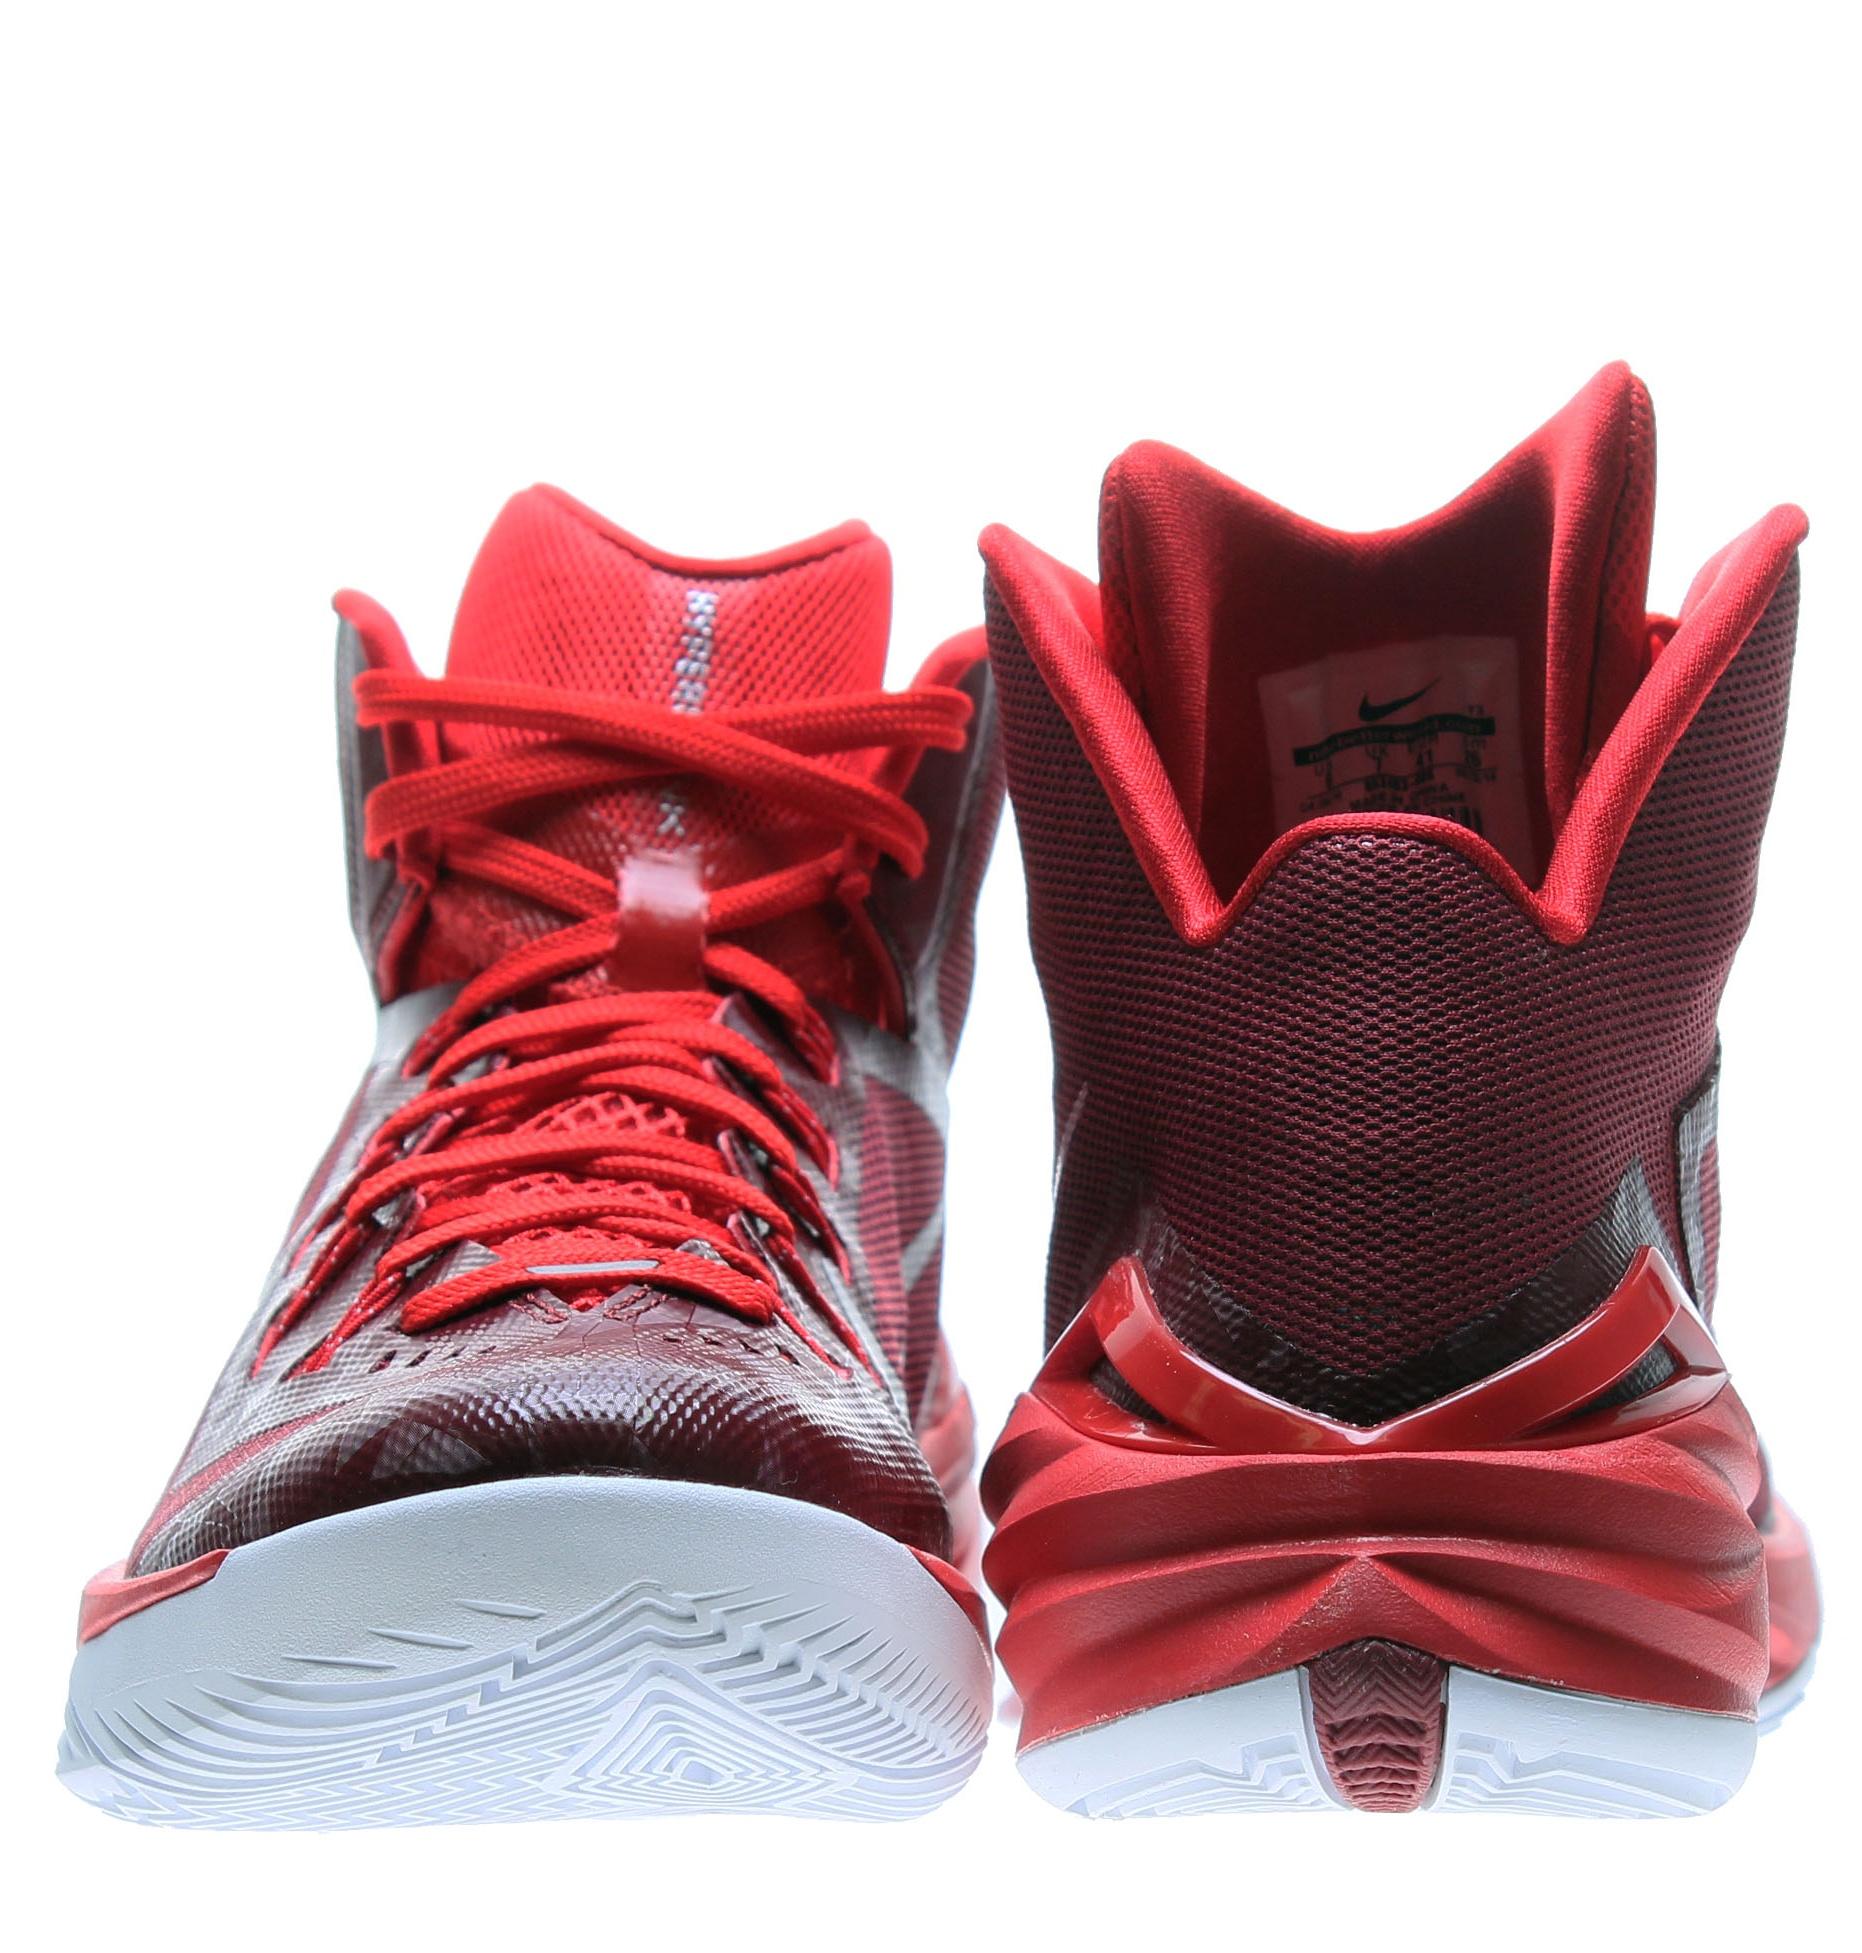 competitive price 2f67d a6c73 ... Black Green Hyperdunk Mens  Nike - Nike Hyperdunk 2014 TB Team Red  University Red Men s Basketball Shoes 653483- ...